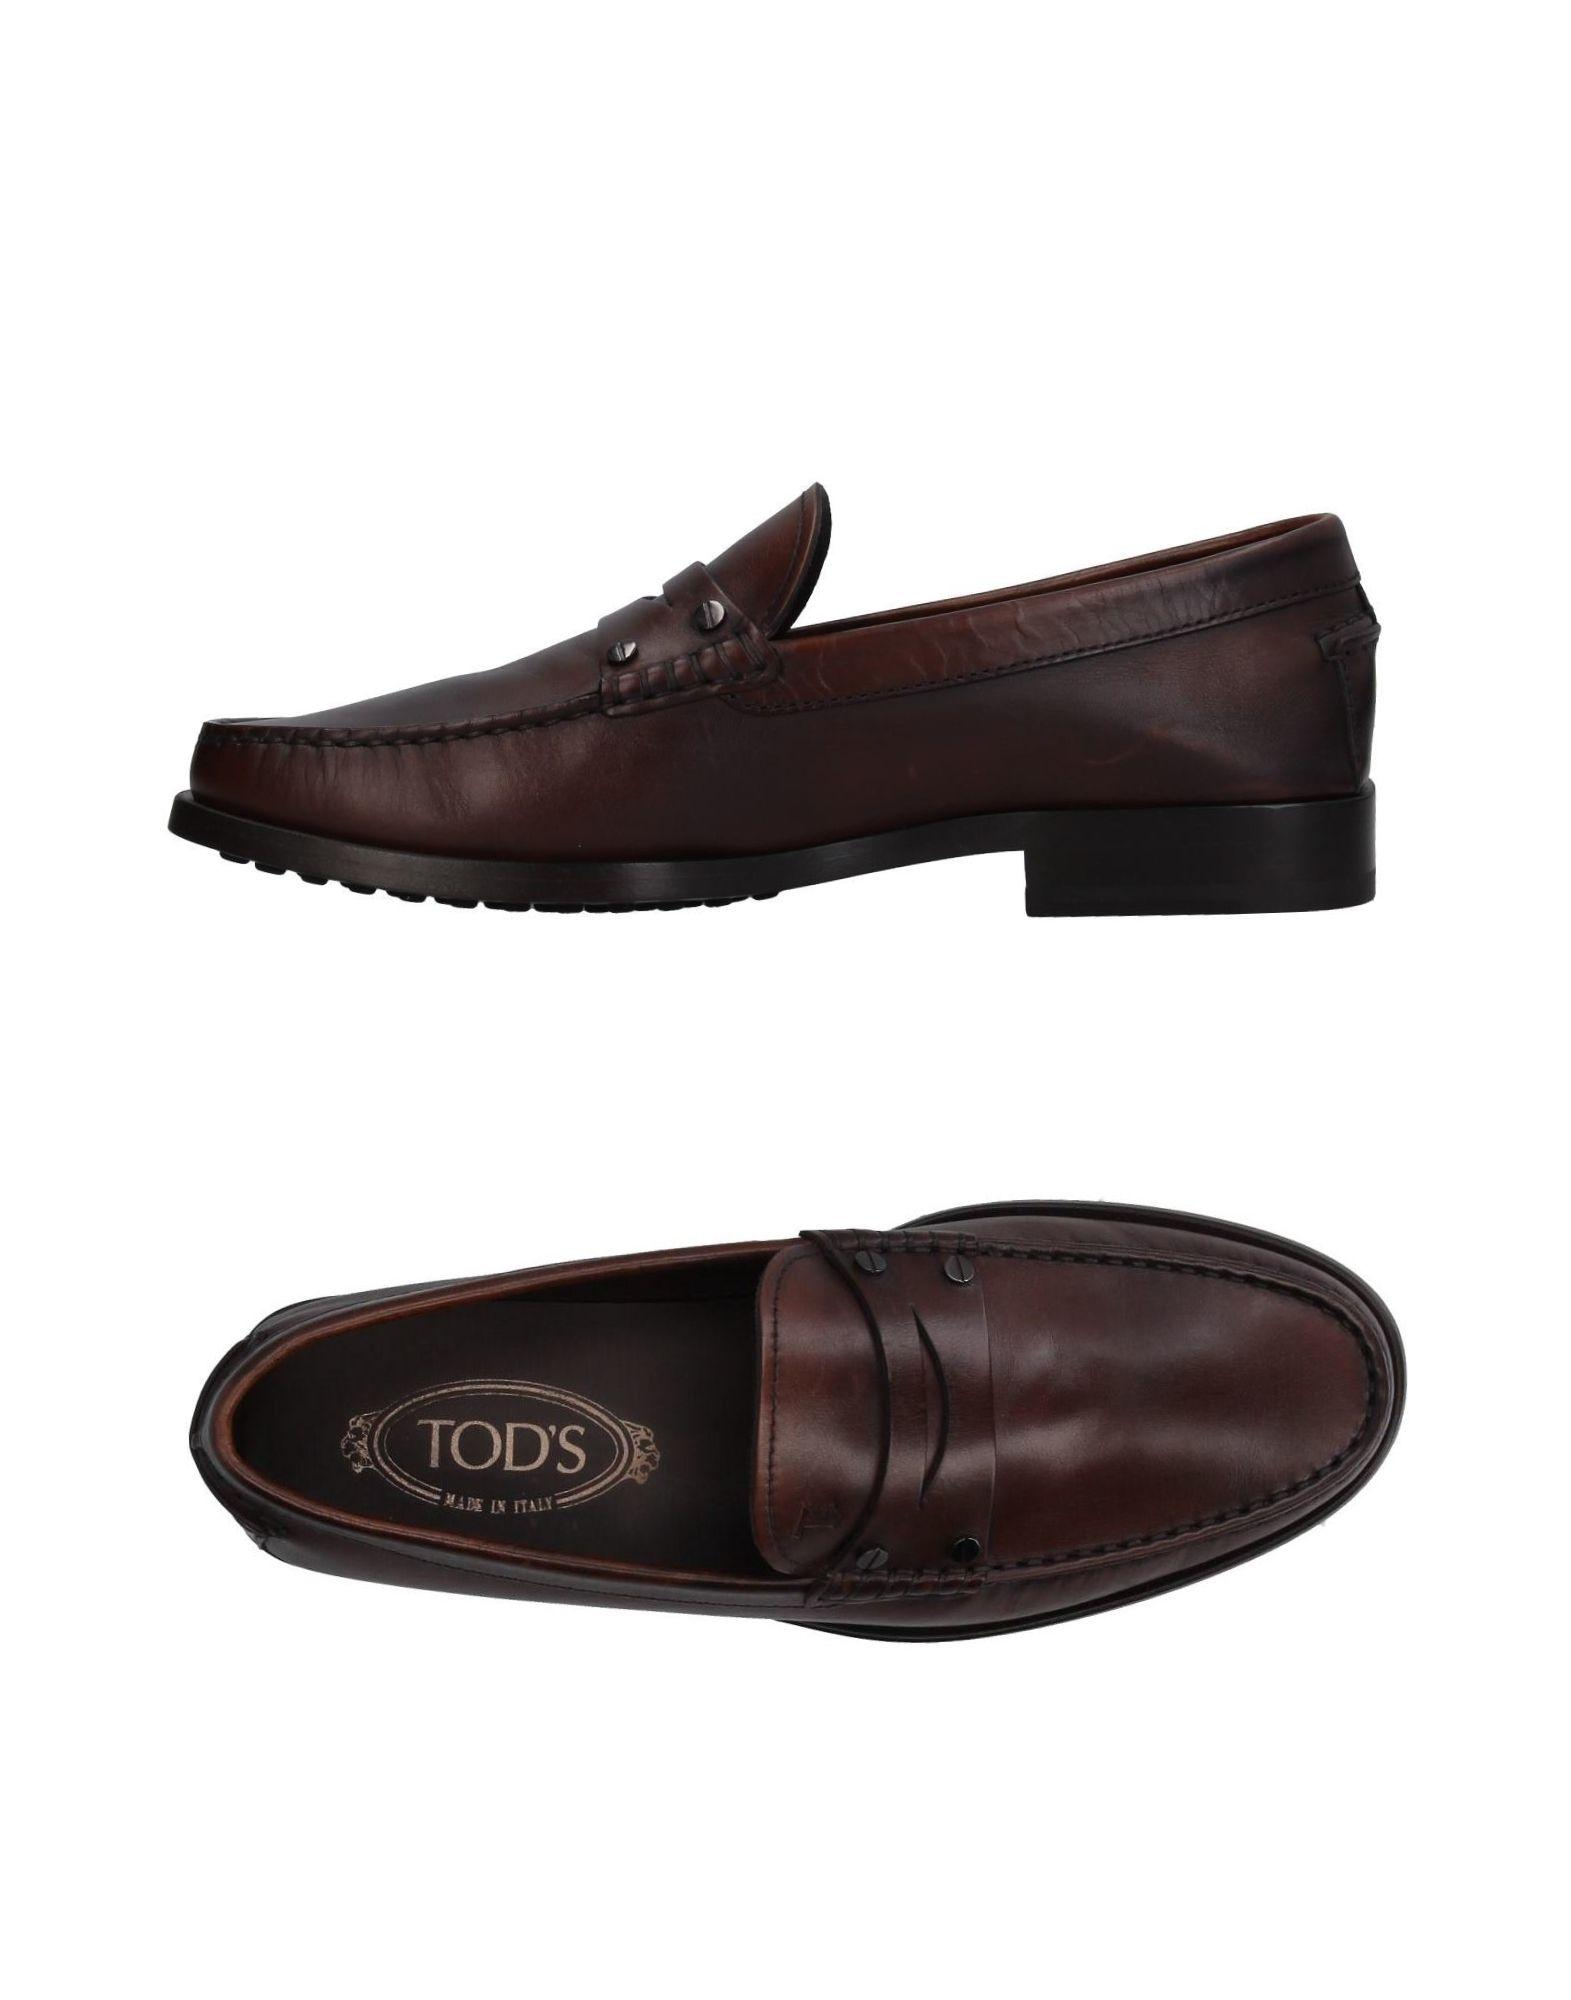 Tod's Loafers In Dark Brown